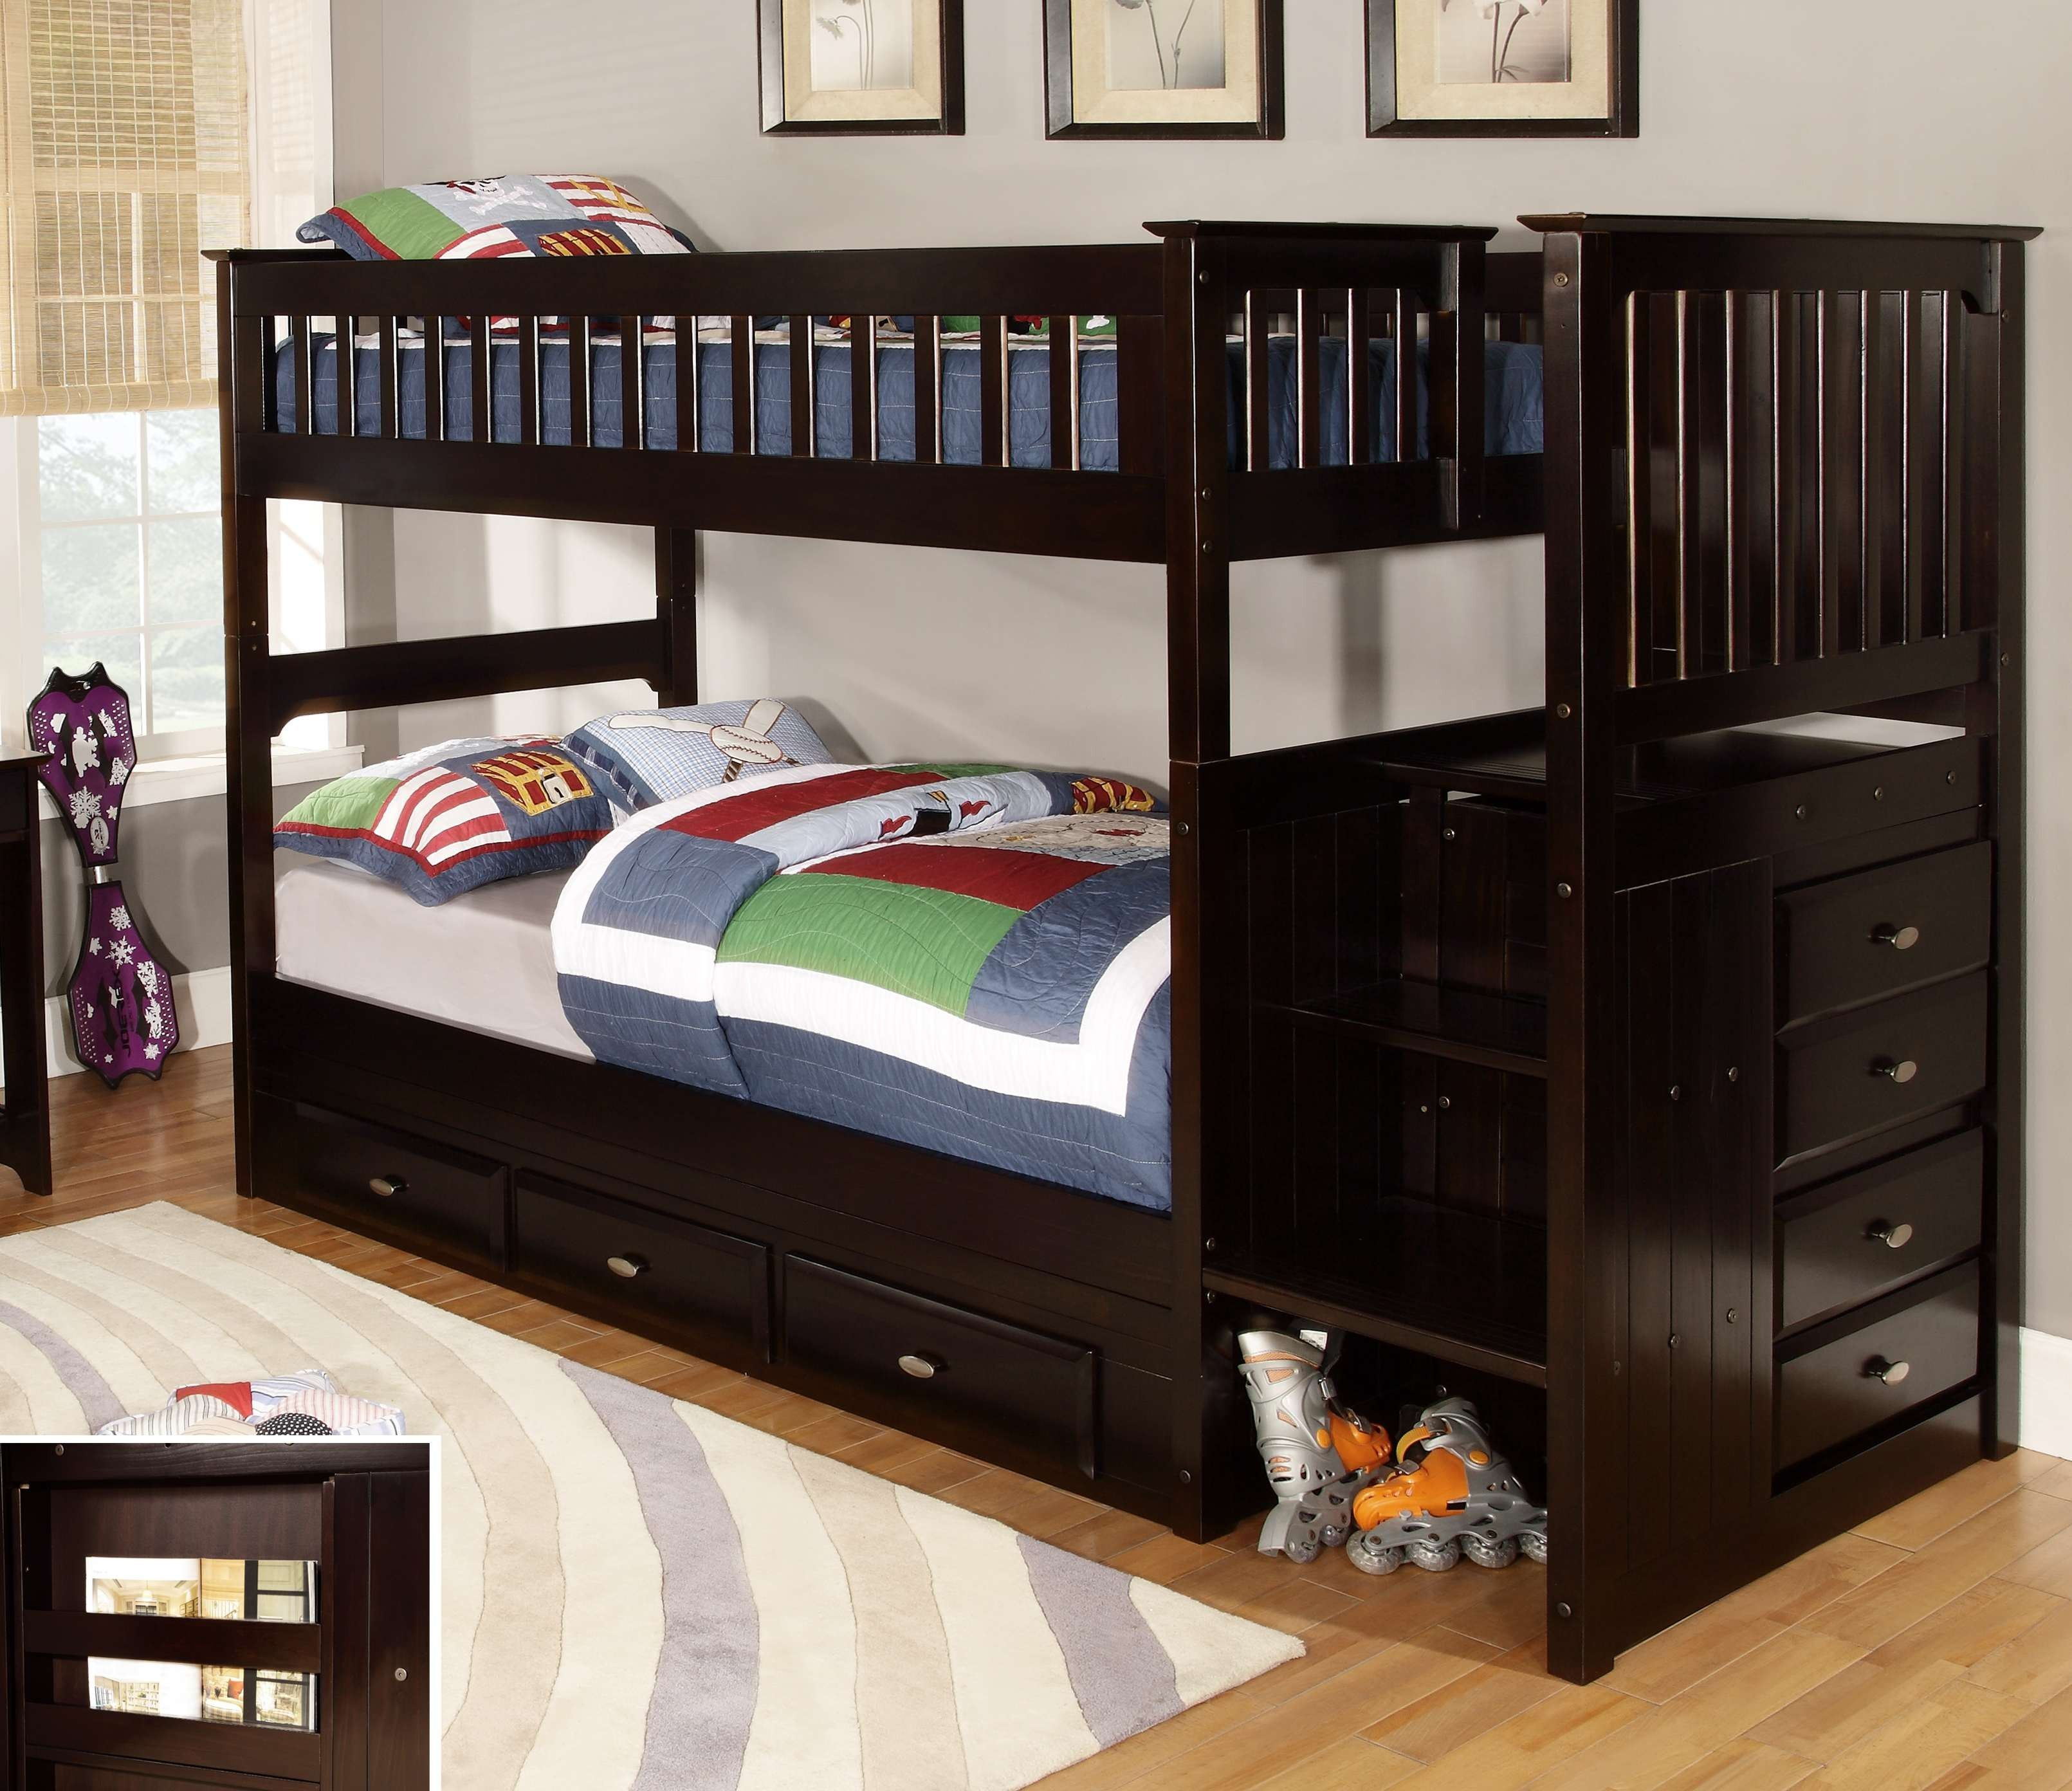 loft drawers bed storage with twin canwood built stairs espresso tower pin in and beds mountaineer bunk